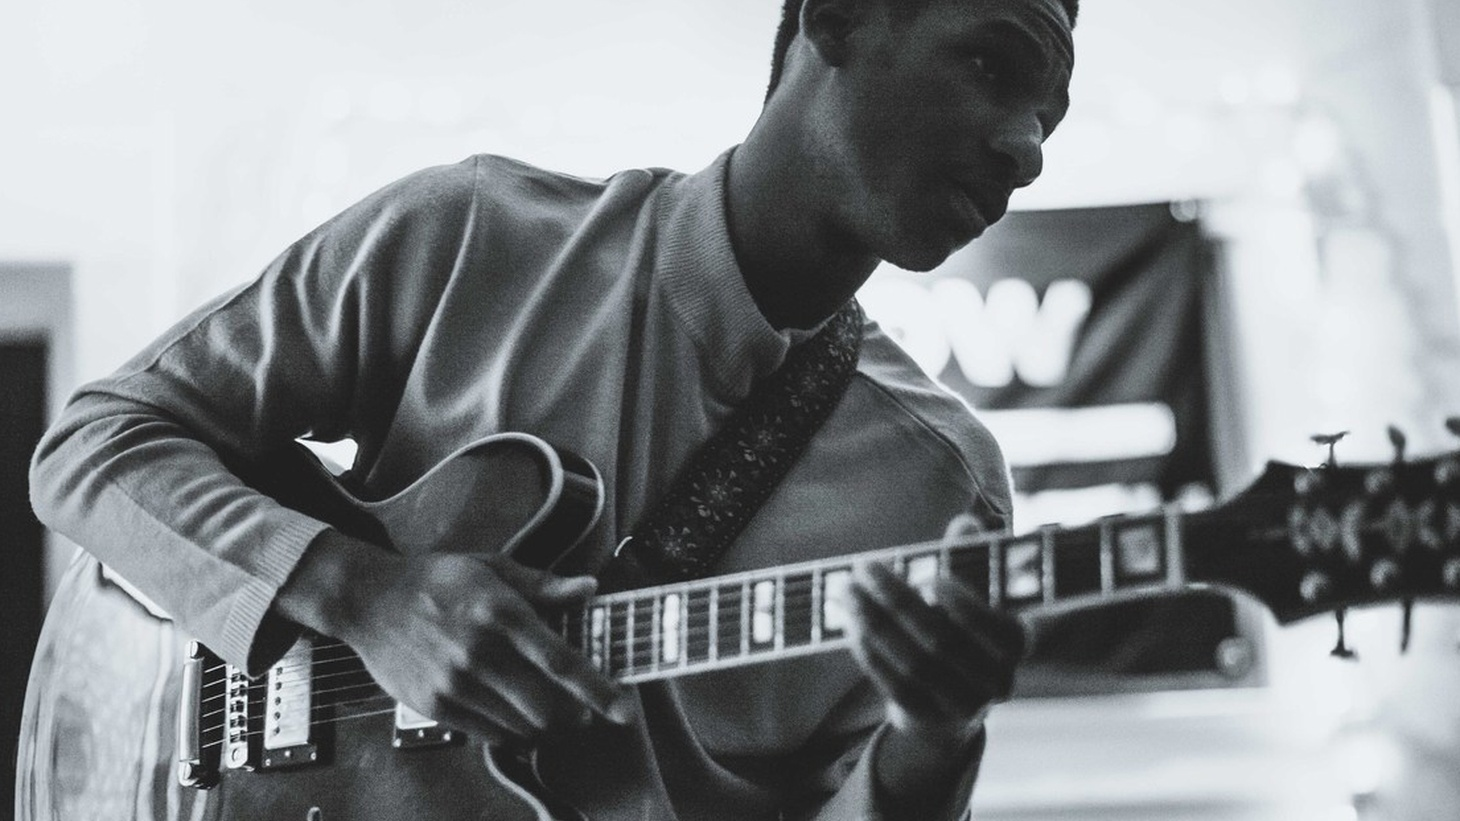 In a remarkably short amount of time, soulful singer/songwriter Leon Bridges has come a long way from singing at open mics at his hometown of Fort Worth, TX. His debut album, Coming Home, is sure to be a summer favorite.